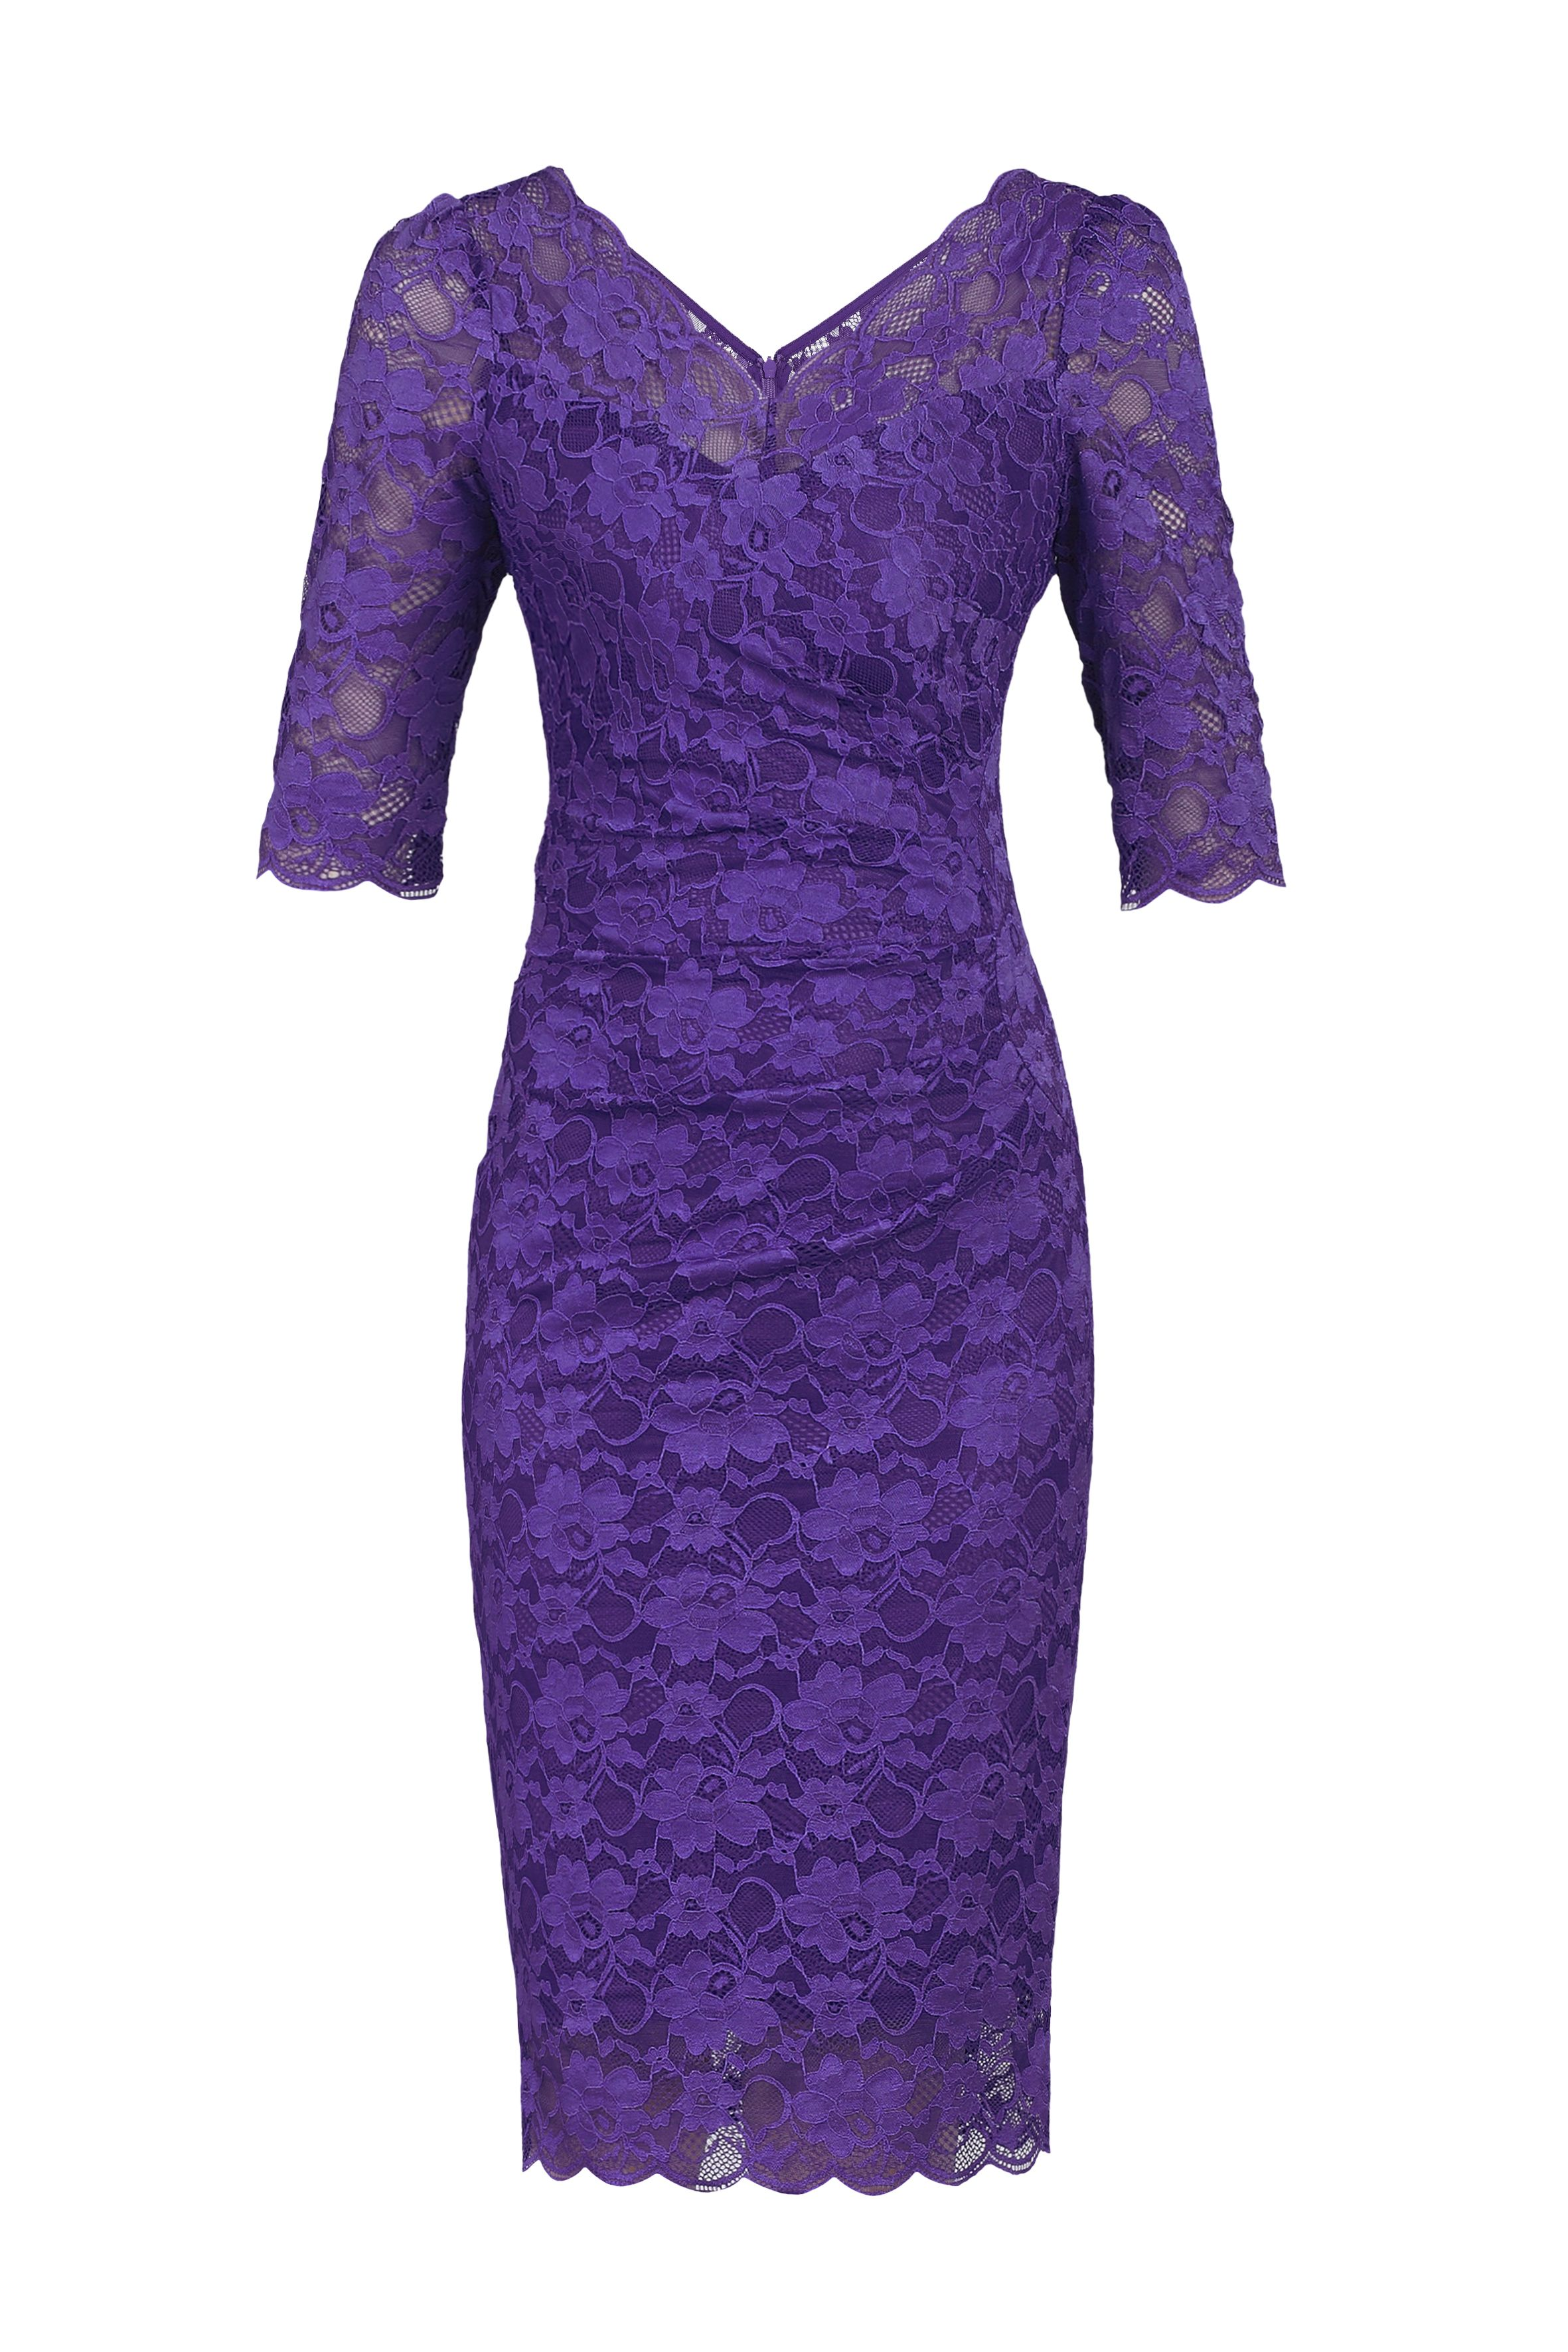 Jolie Moi 3/4 Sleeve V Neck Ruched Lace Dress, Lavender